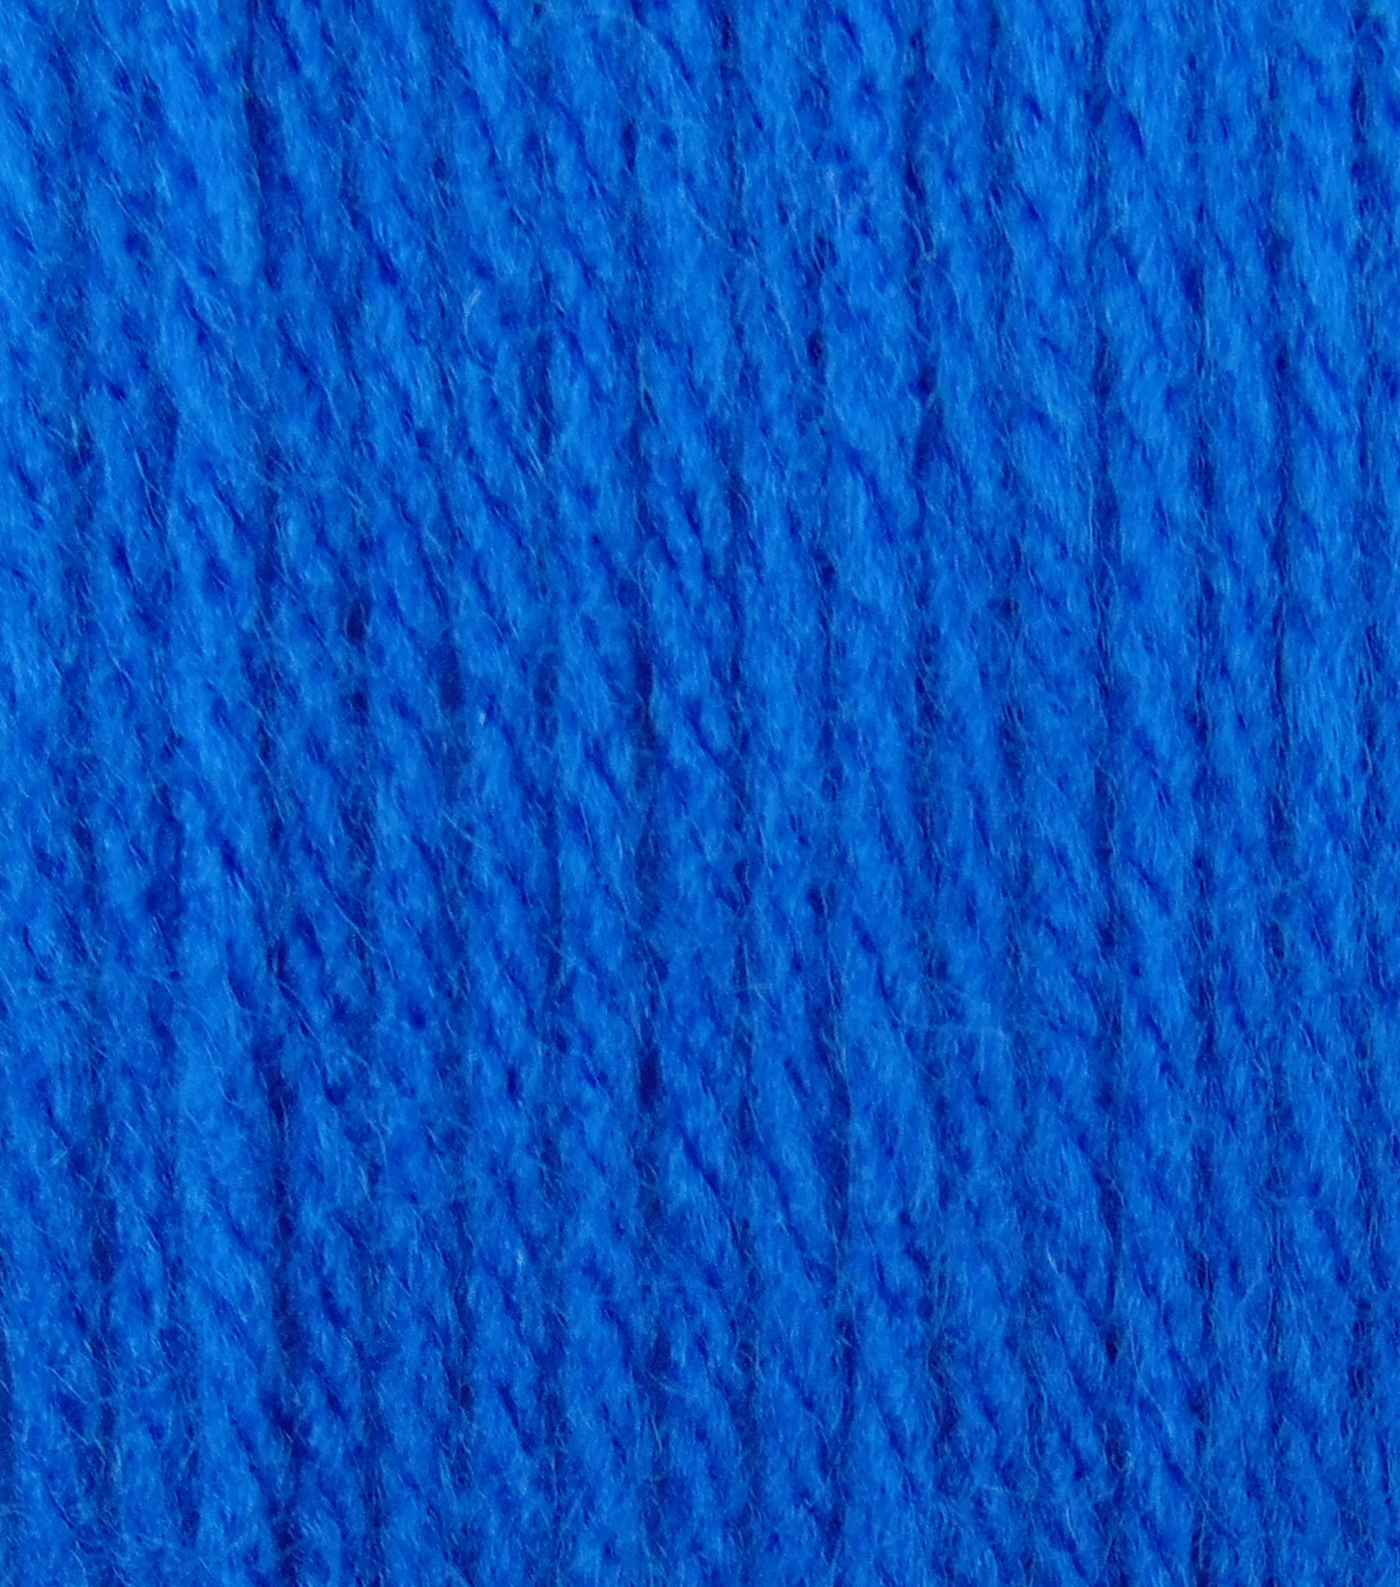 Big Twist Collection Value Worsted Yarn, Royal Blue